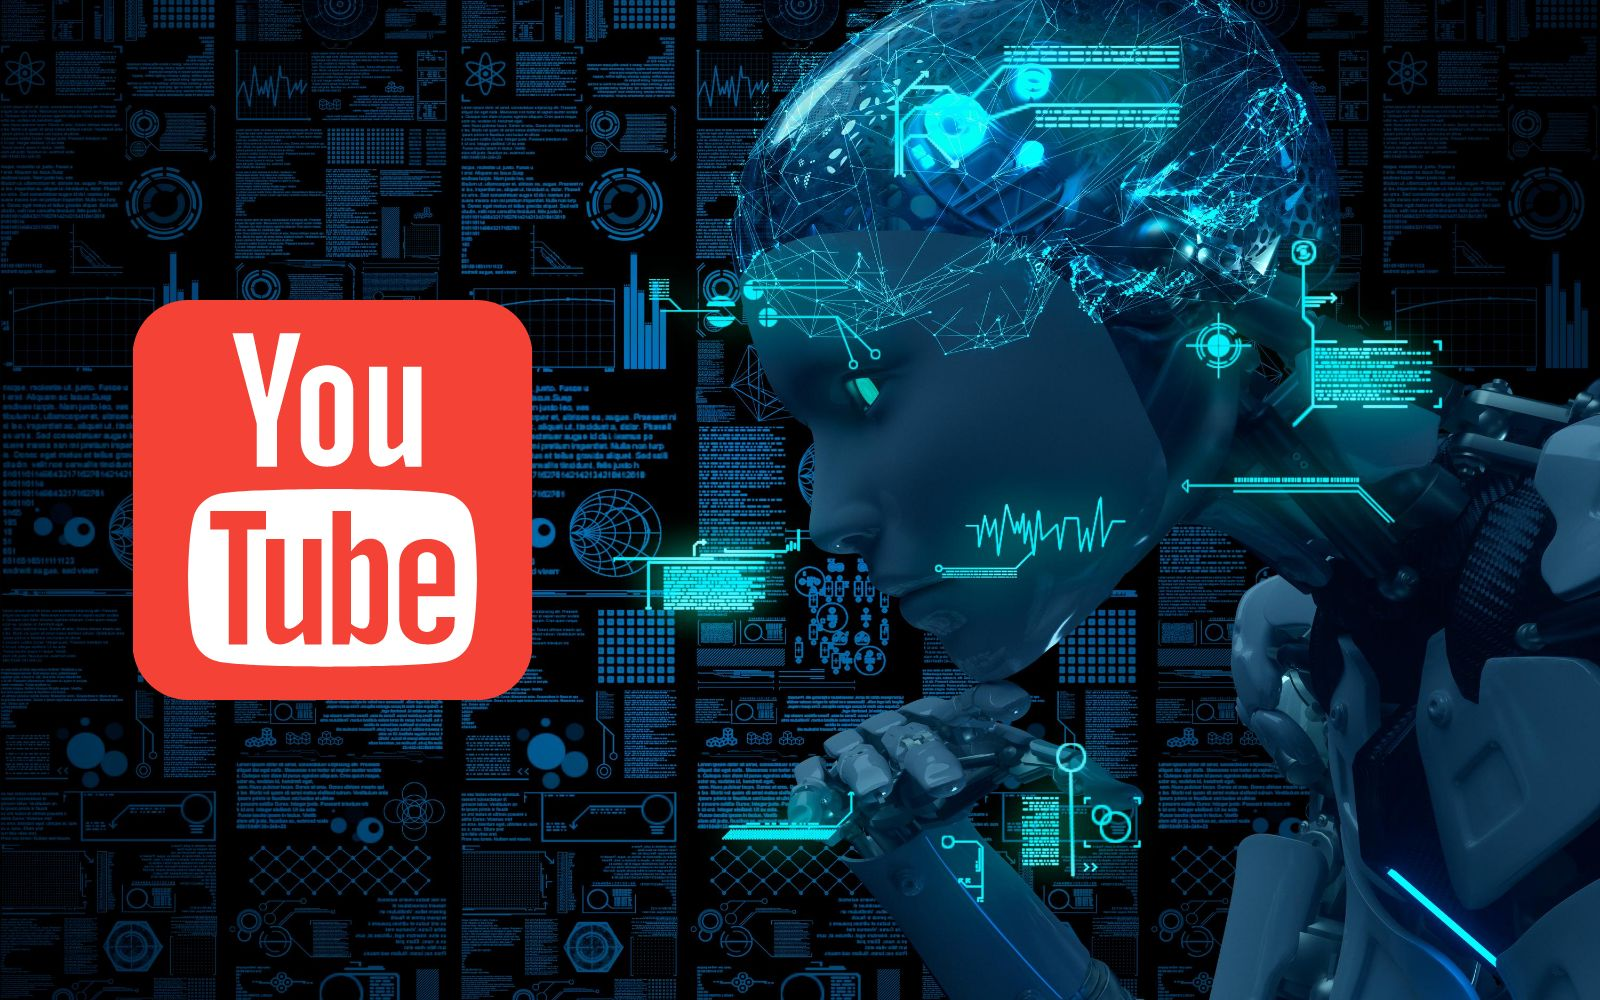 /awesome-ai-youtube-videos-under-10-minutes-b1a43ubh feature image